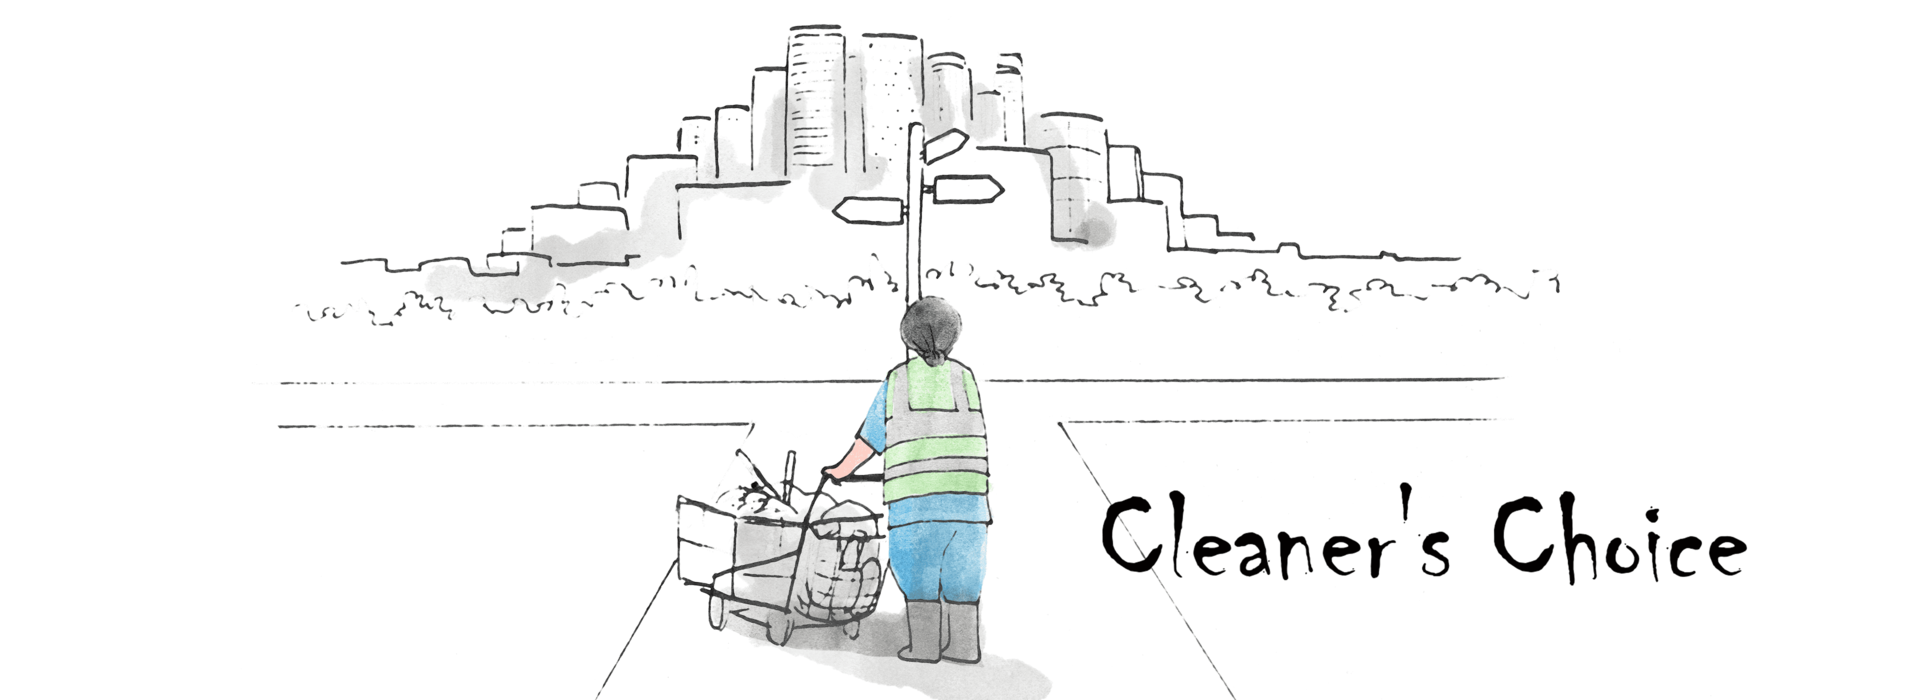 Cleaner's Choice